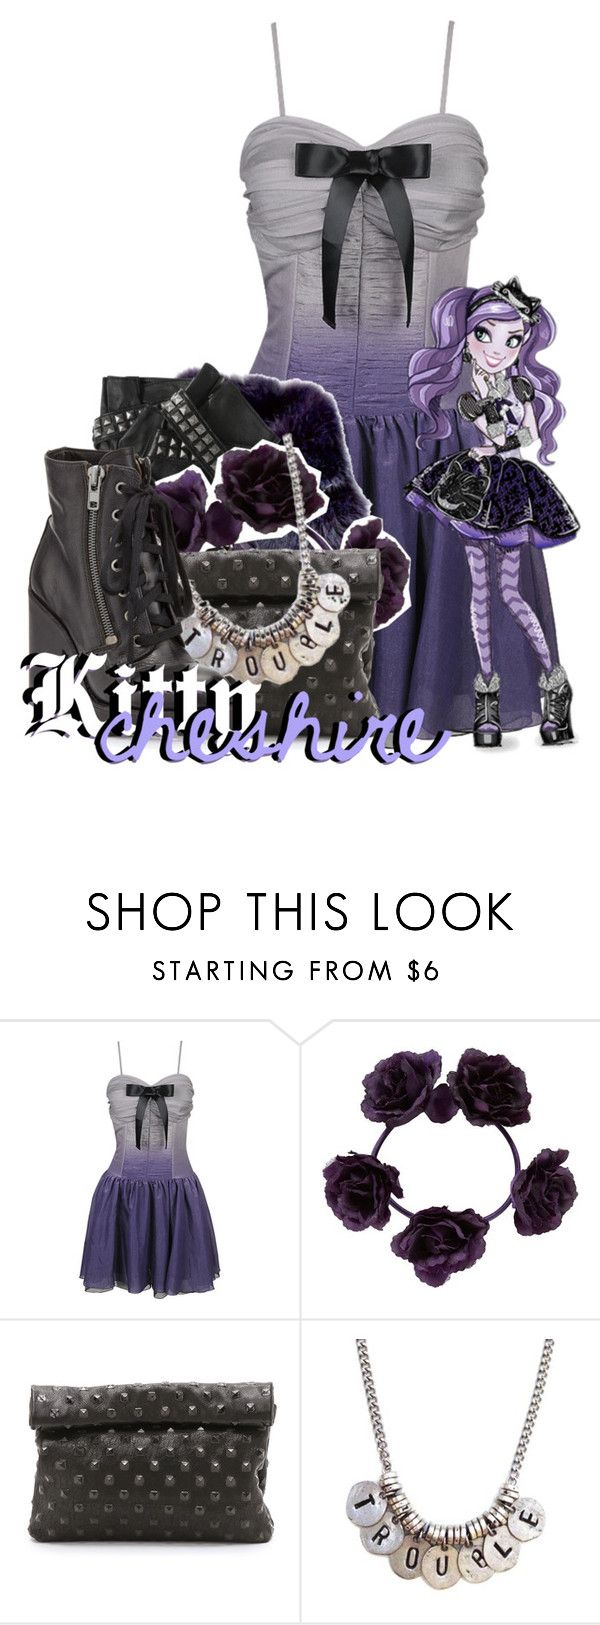 """""""Kitty Cheshire from Ever After High"""" by magykgirlz ❤ liked on Polyvore featuring Forever 21, Loewe, Karl Lagerfeld, Marie Turnor, Ash, women's clothing, women, female, woman and misses"""